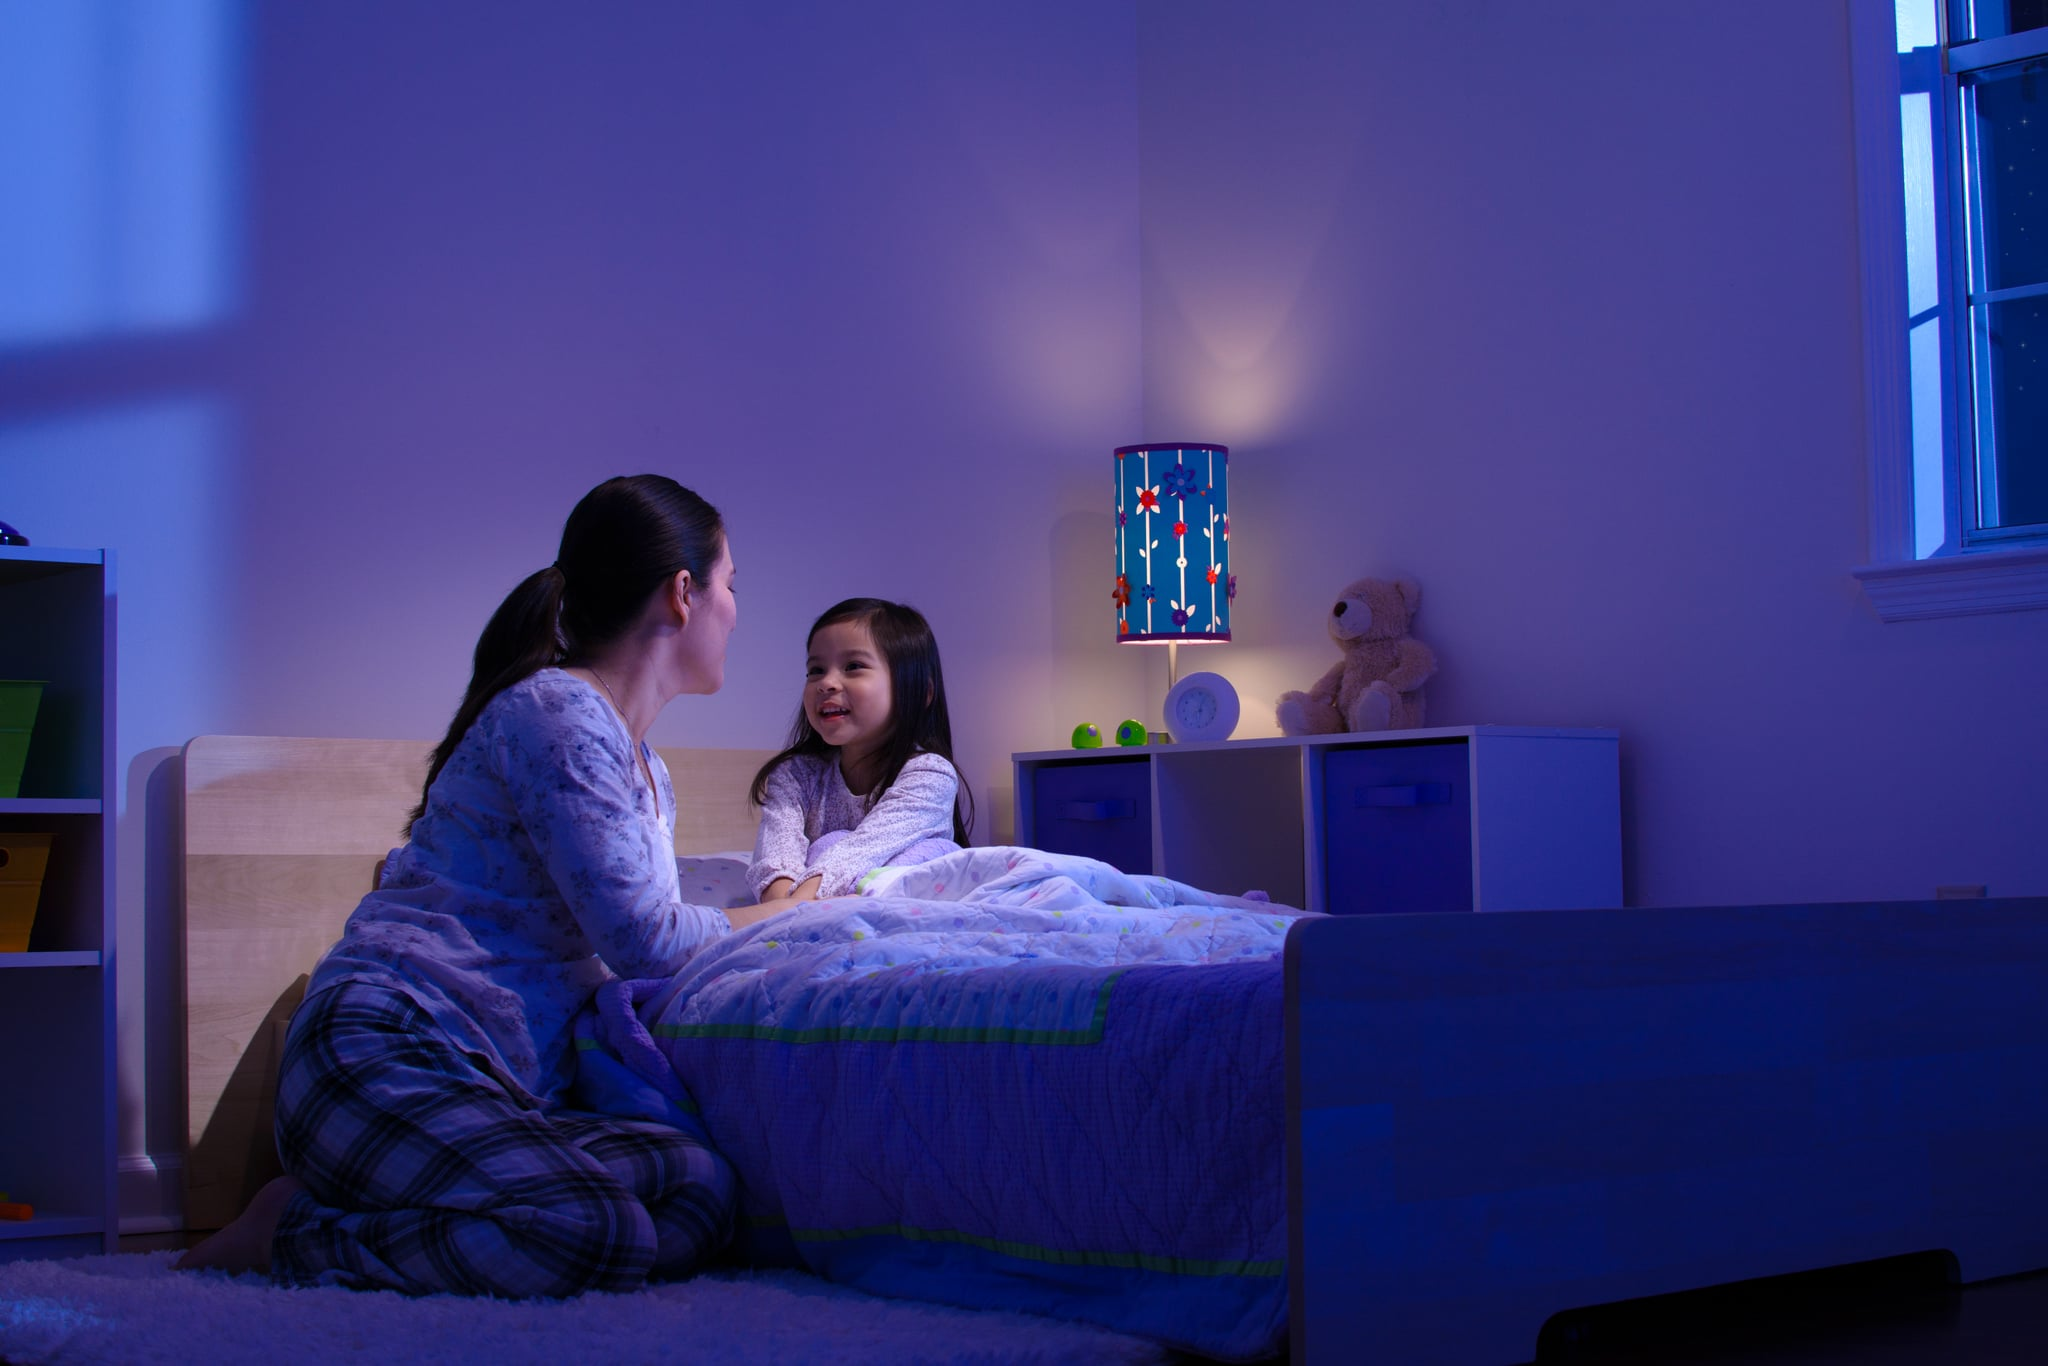 Mother talking with her child before bedtime, smiling.